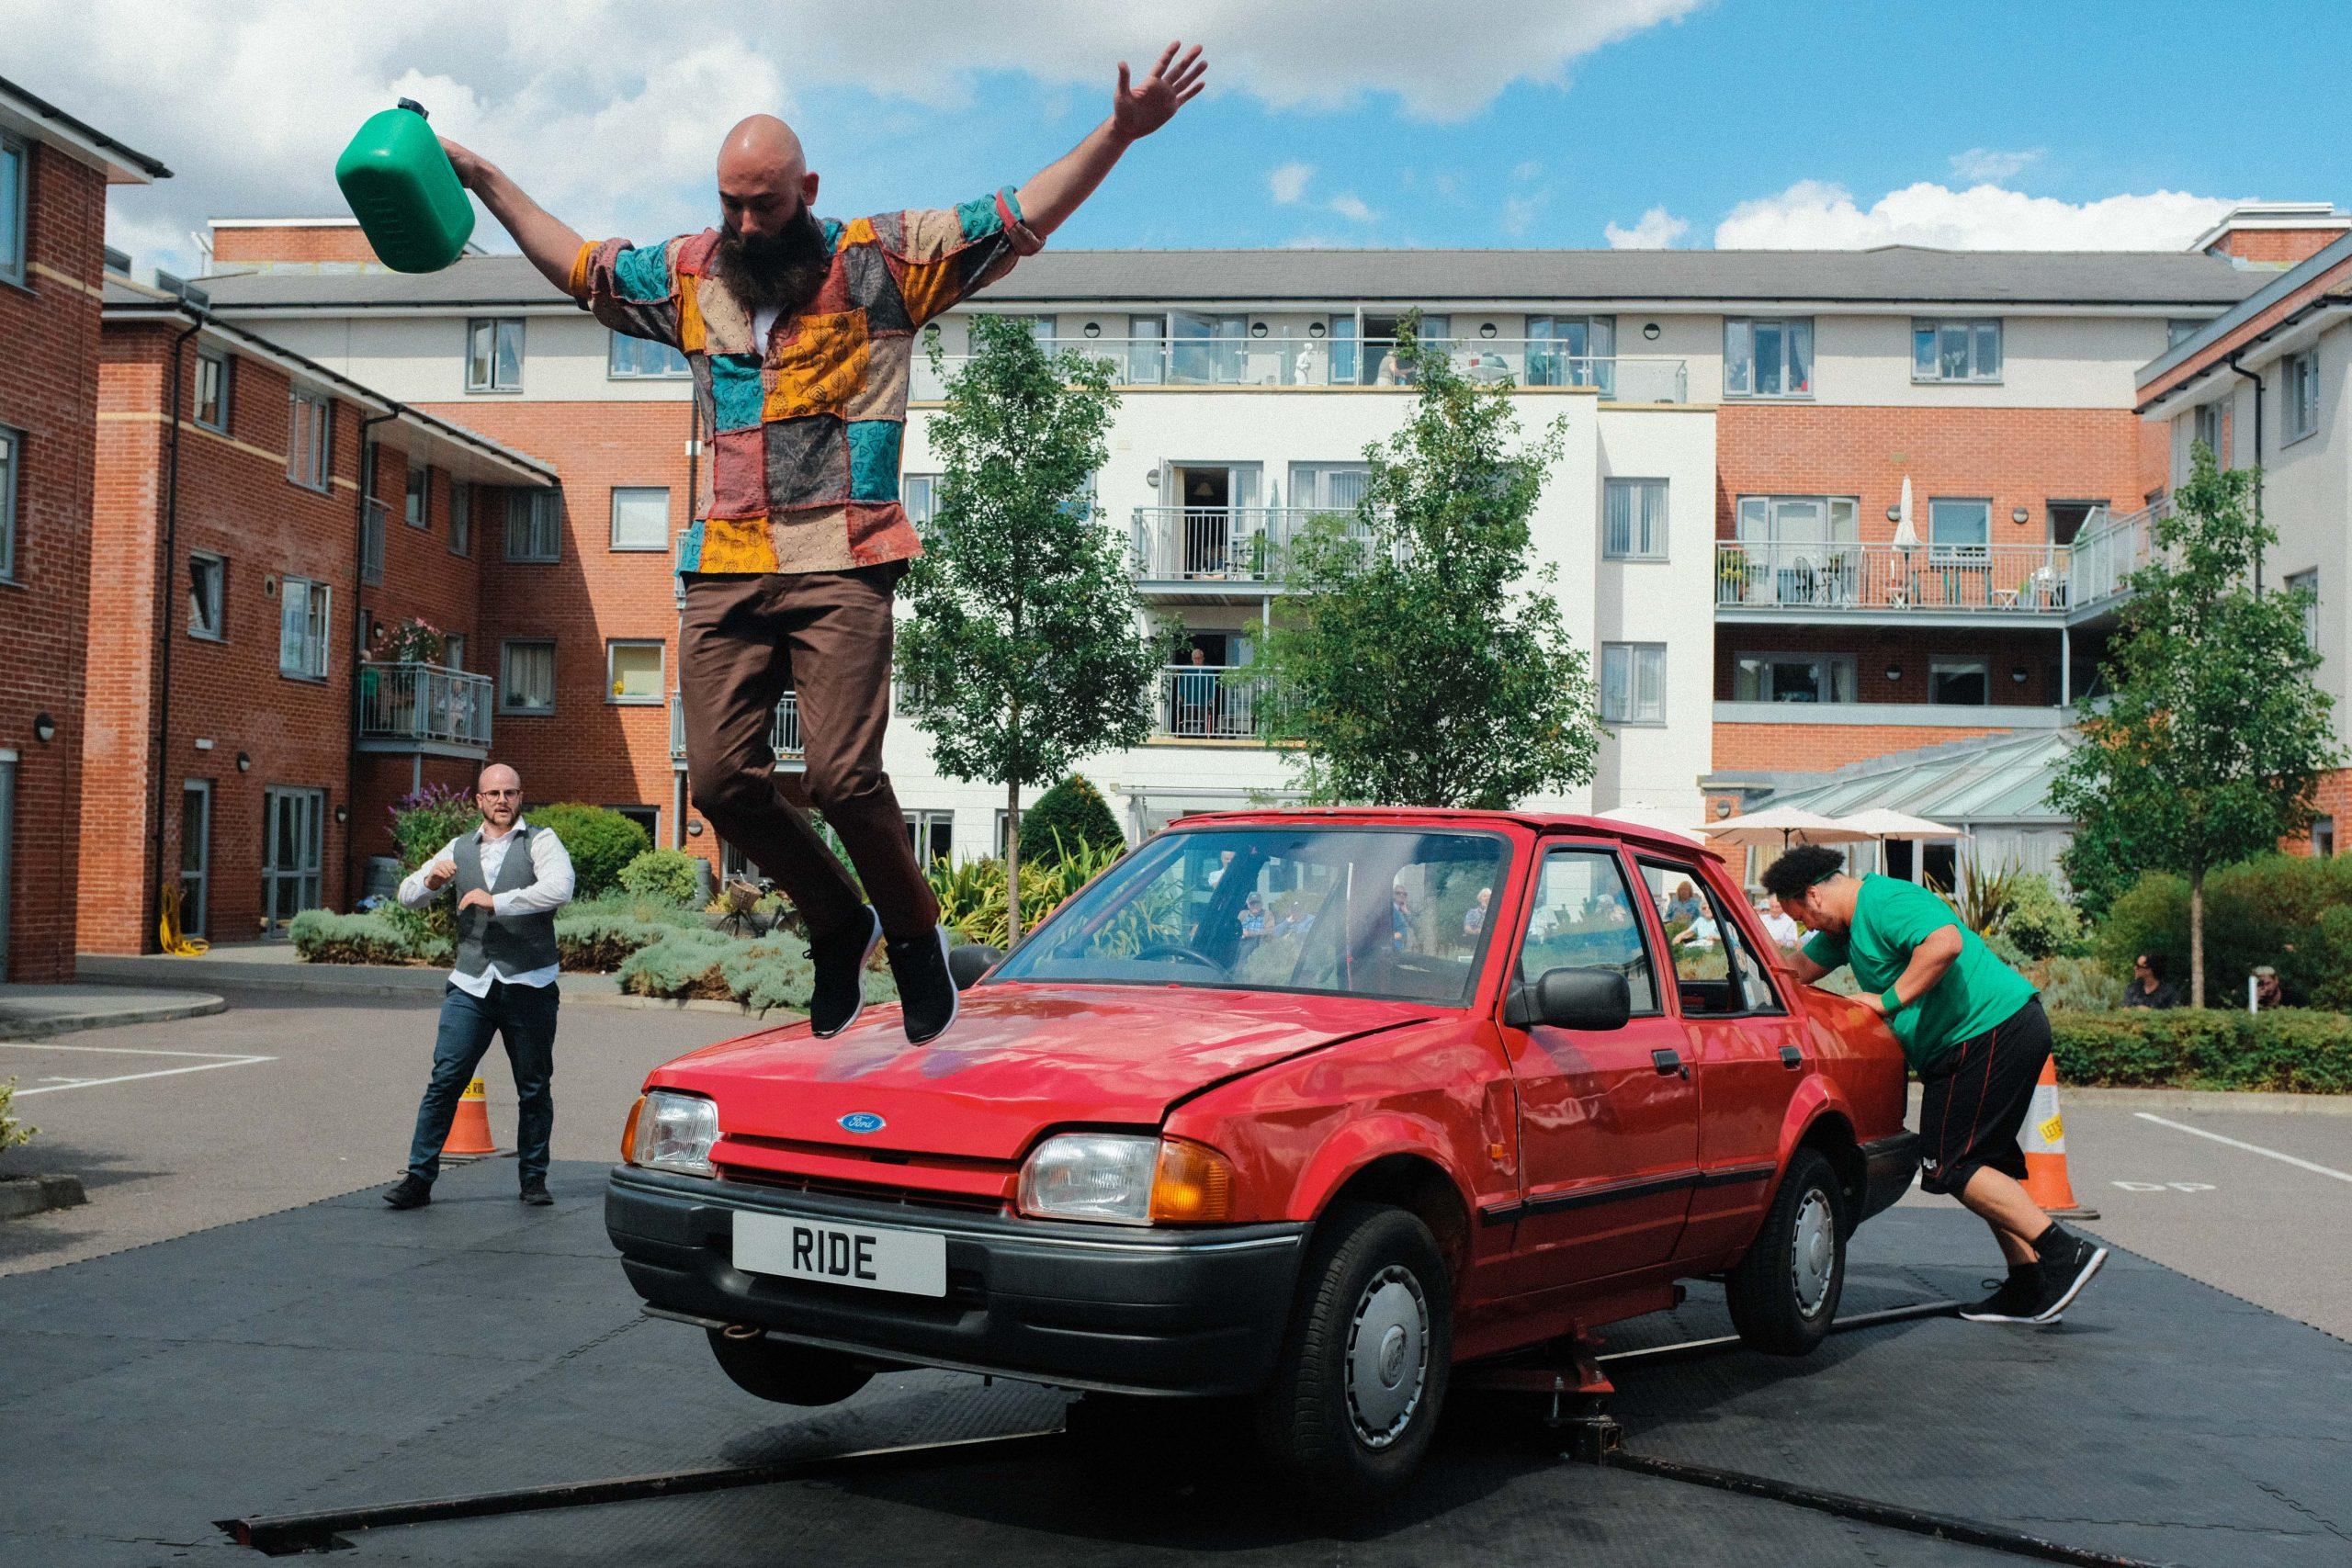 Dancer jumps off the front of a car